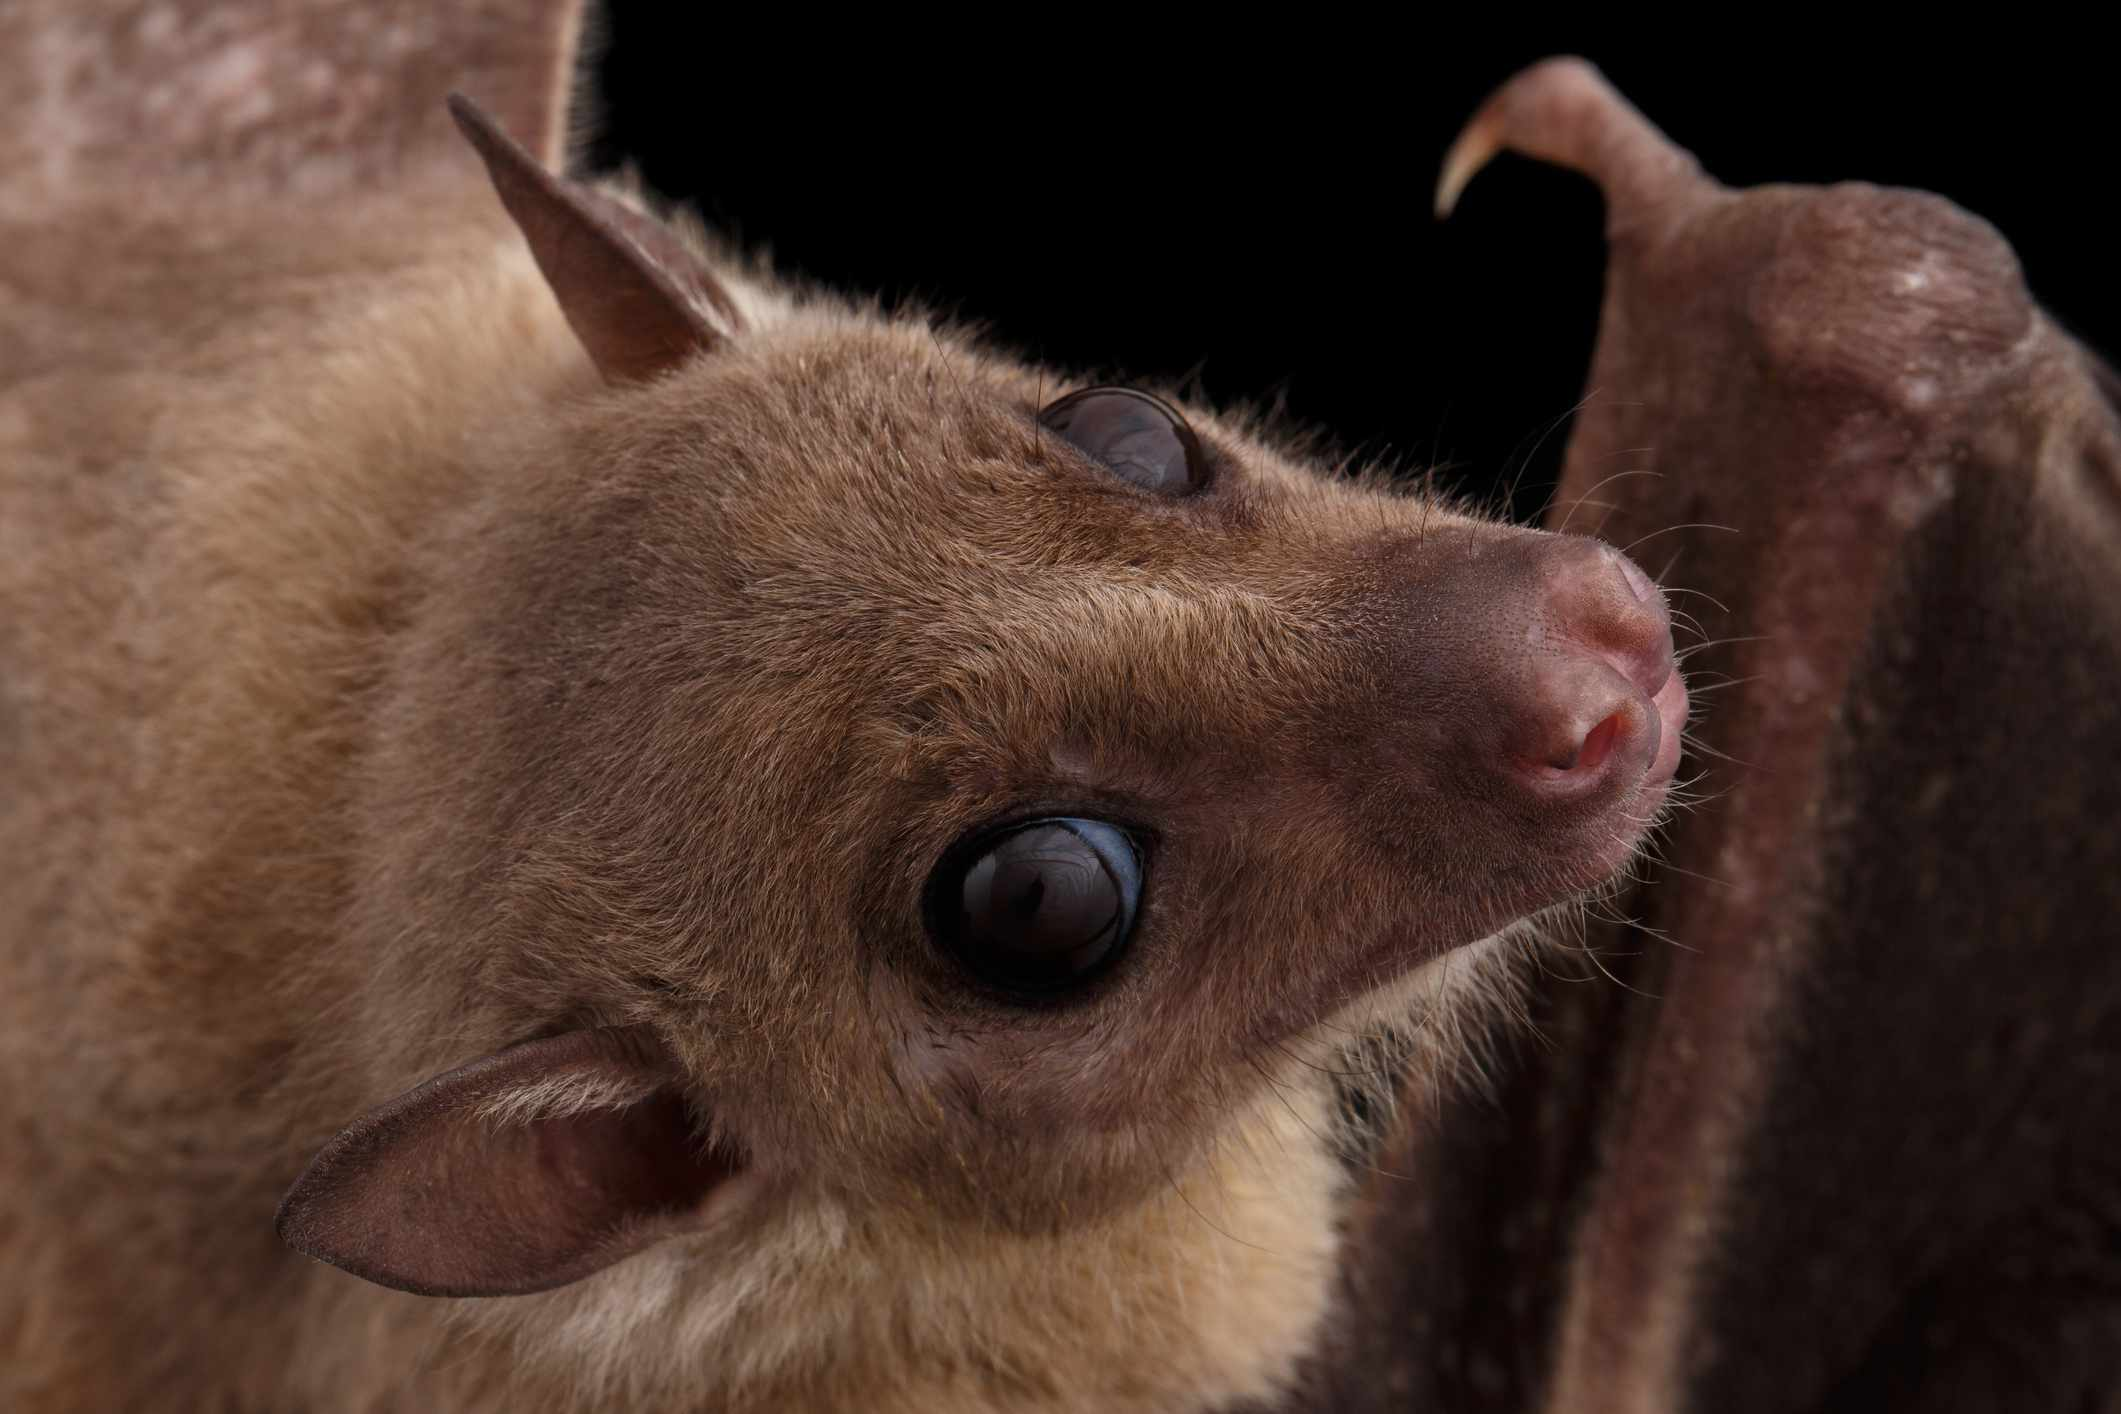 A furry brown bat looks into the camera